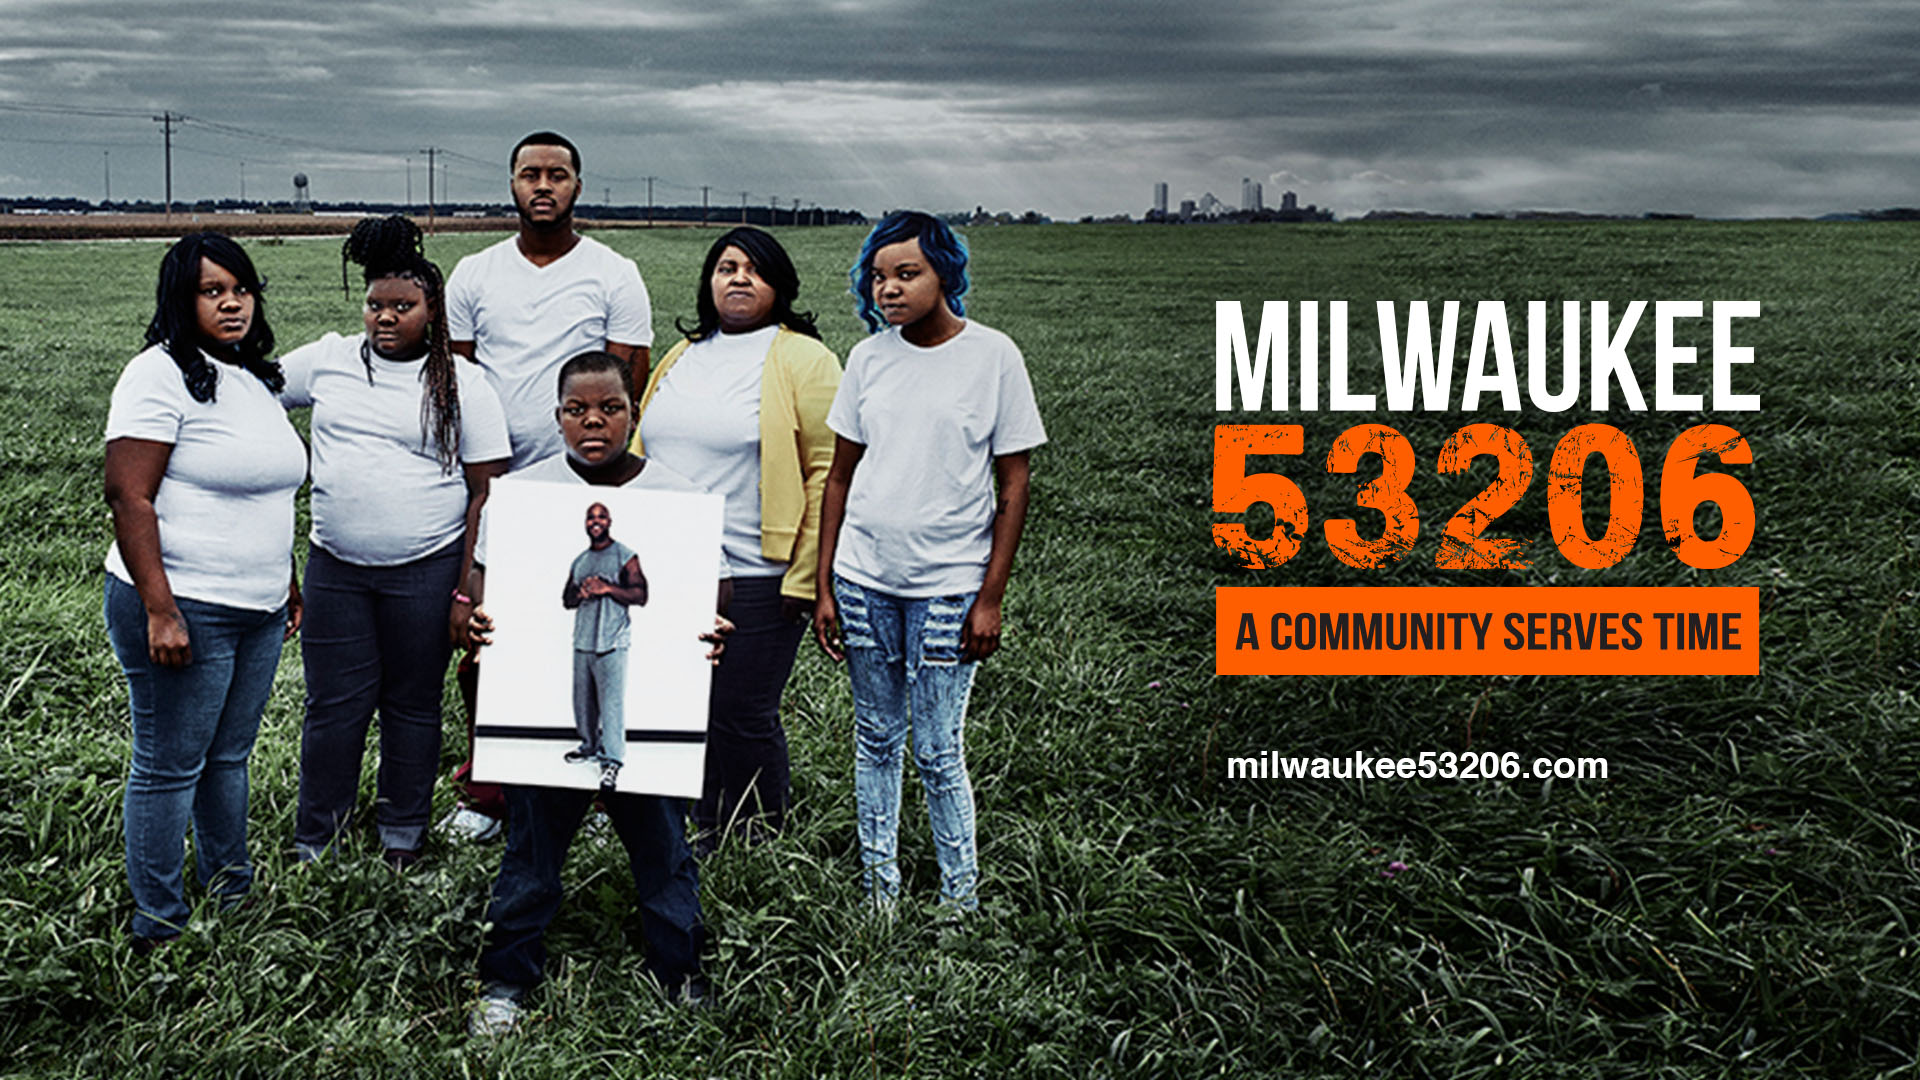 Milwaukee-53208-Vimeo-with-title.jpg